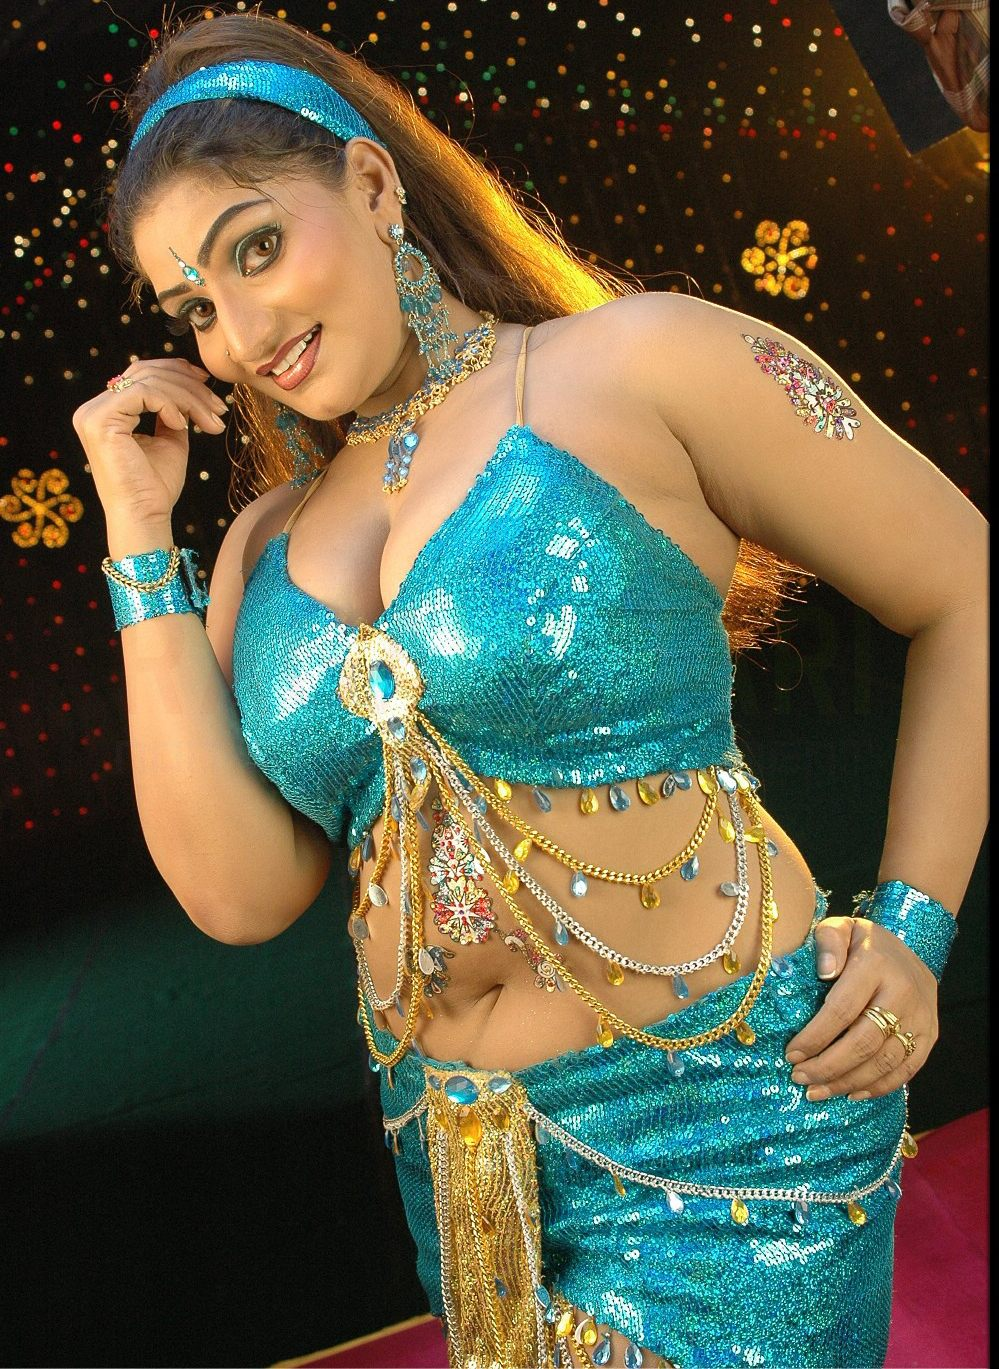 ... Mallu Hot Download Free Babilona Mallu Bollywood Wallpapers,M